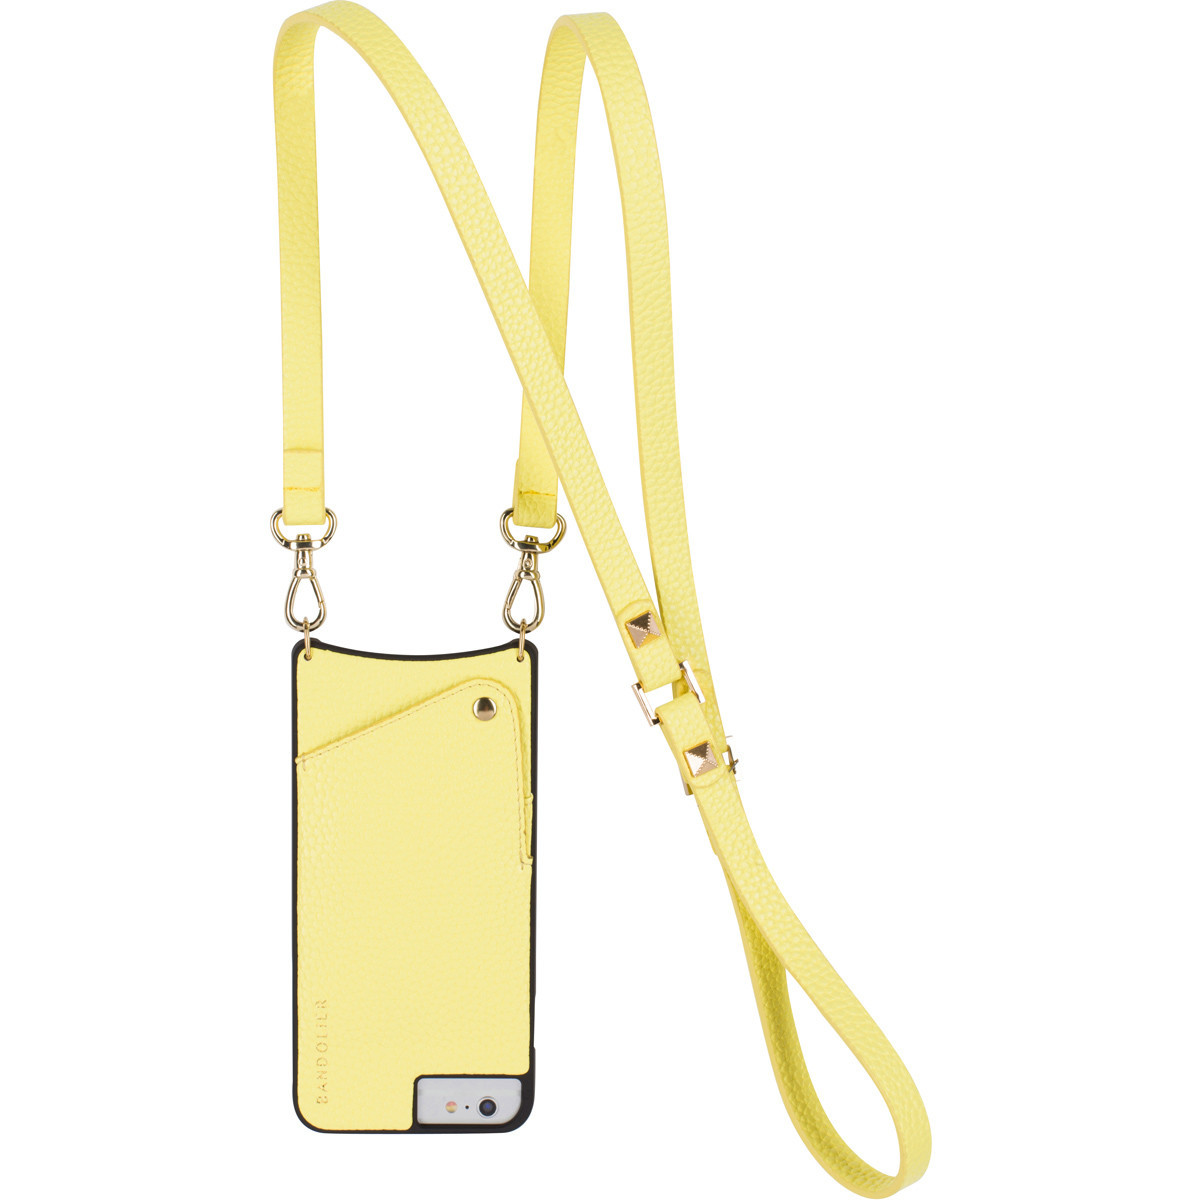 Hands-free phone/credit card/cash carrier from Bandolier.